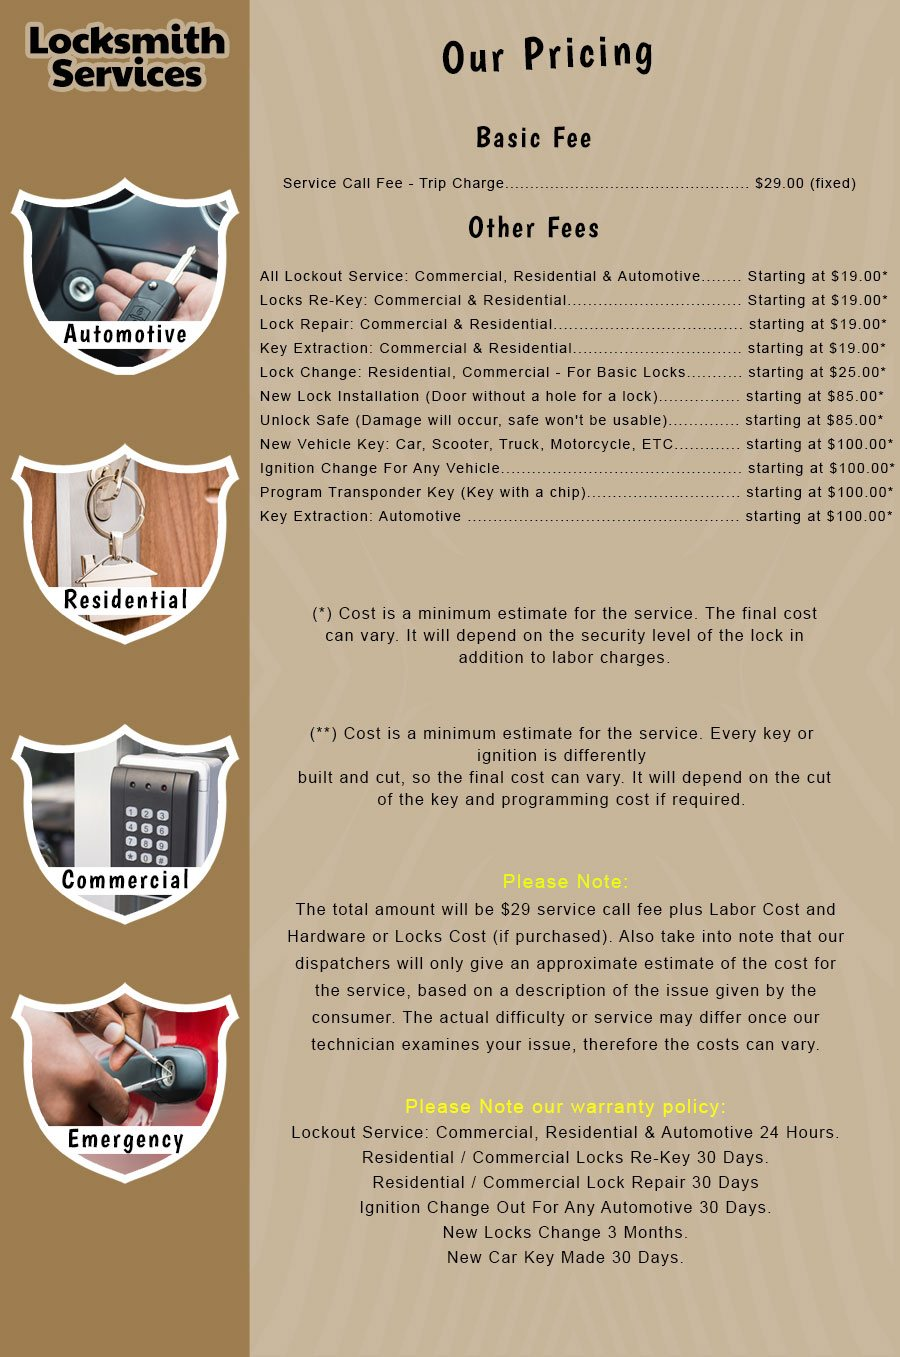 elite locksmith services price list